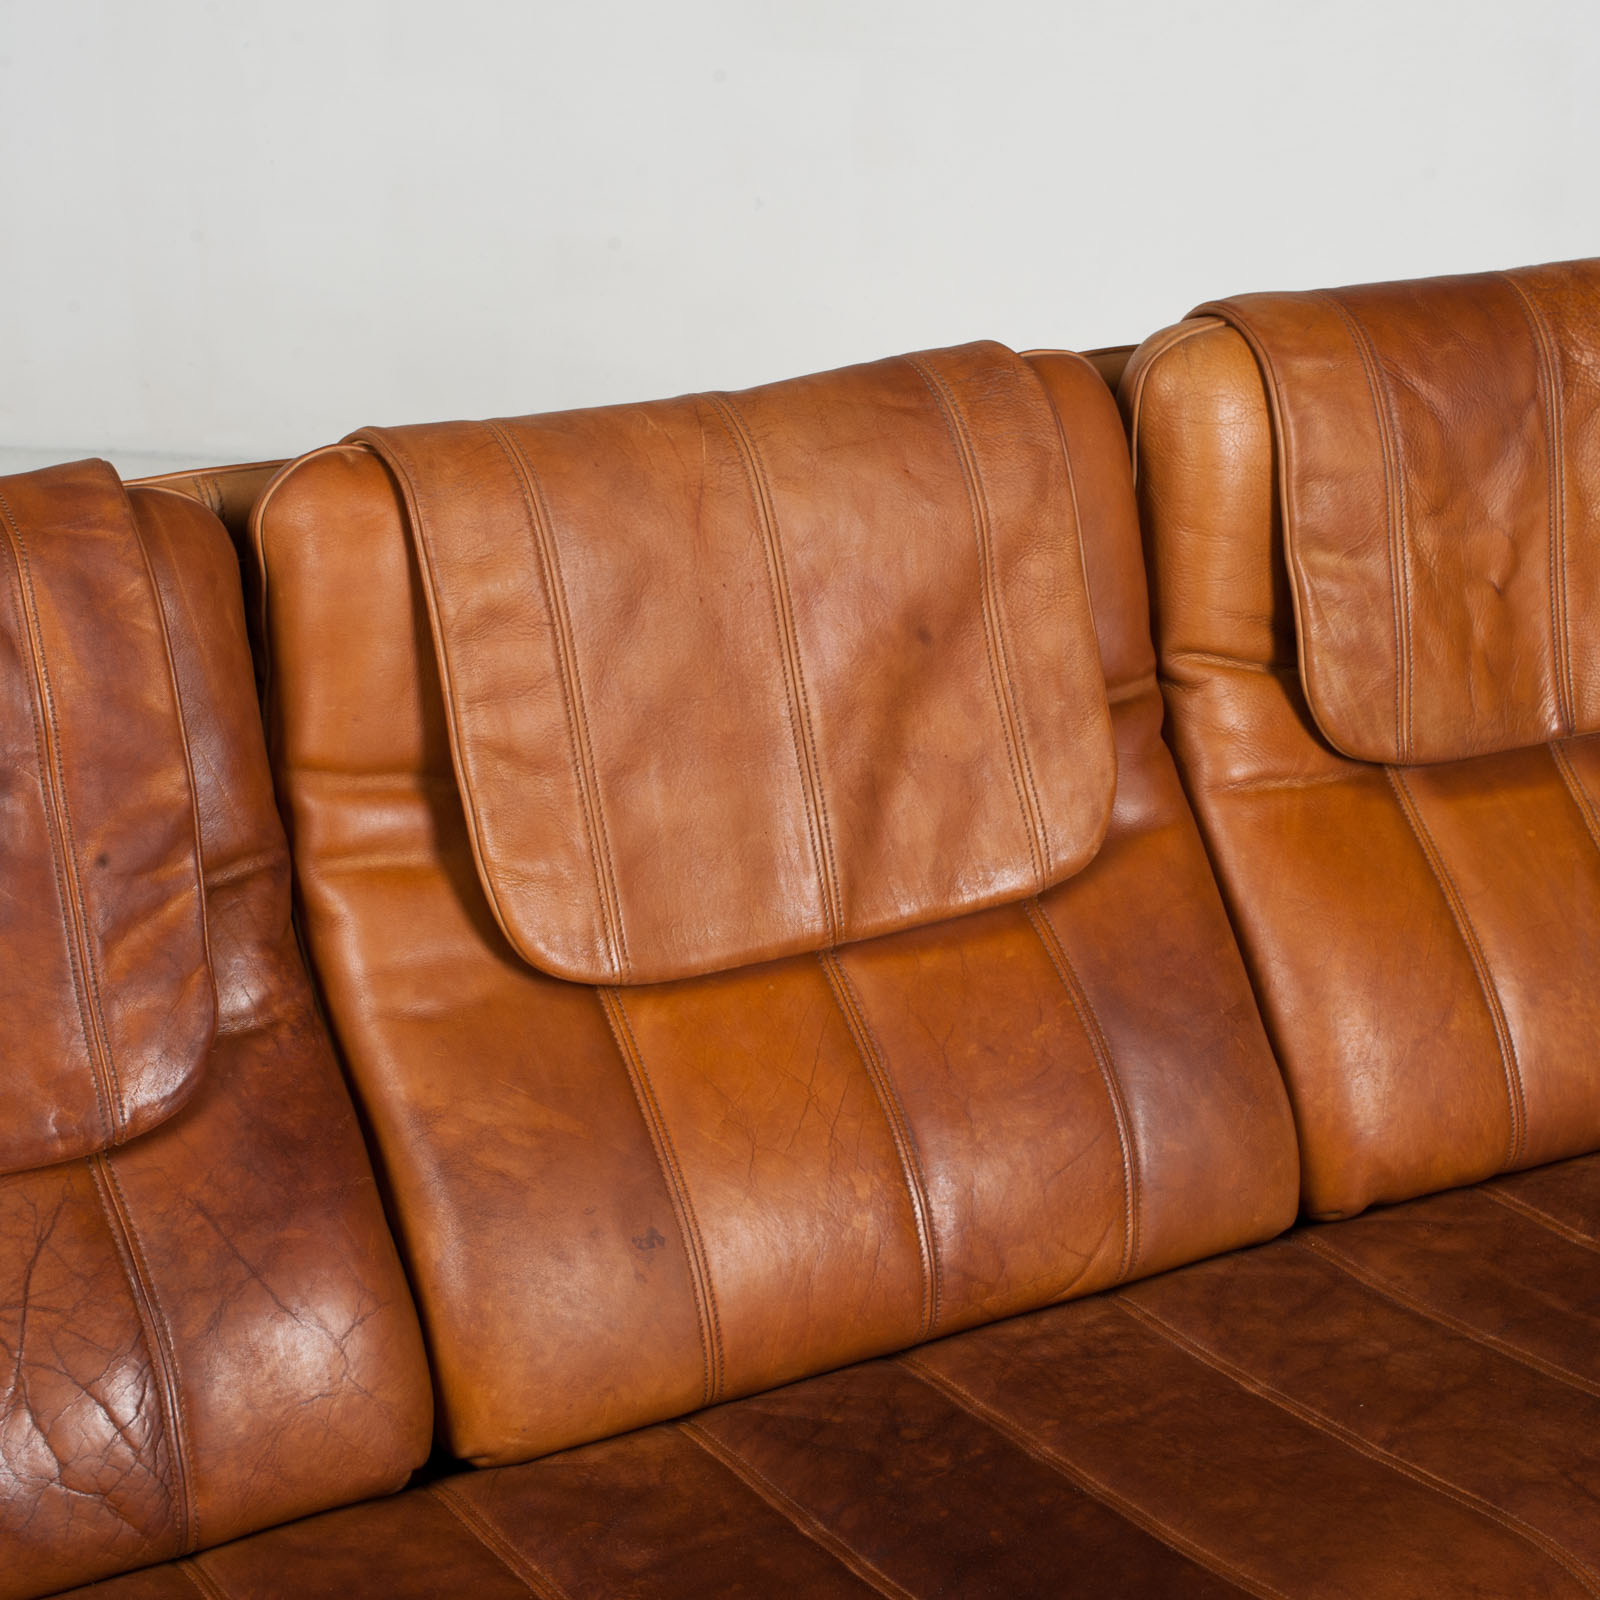 3 Seat Sofa By De Sede In Tan Leather 1970s Switzerland 07